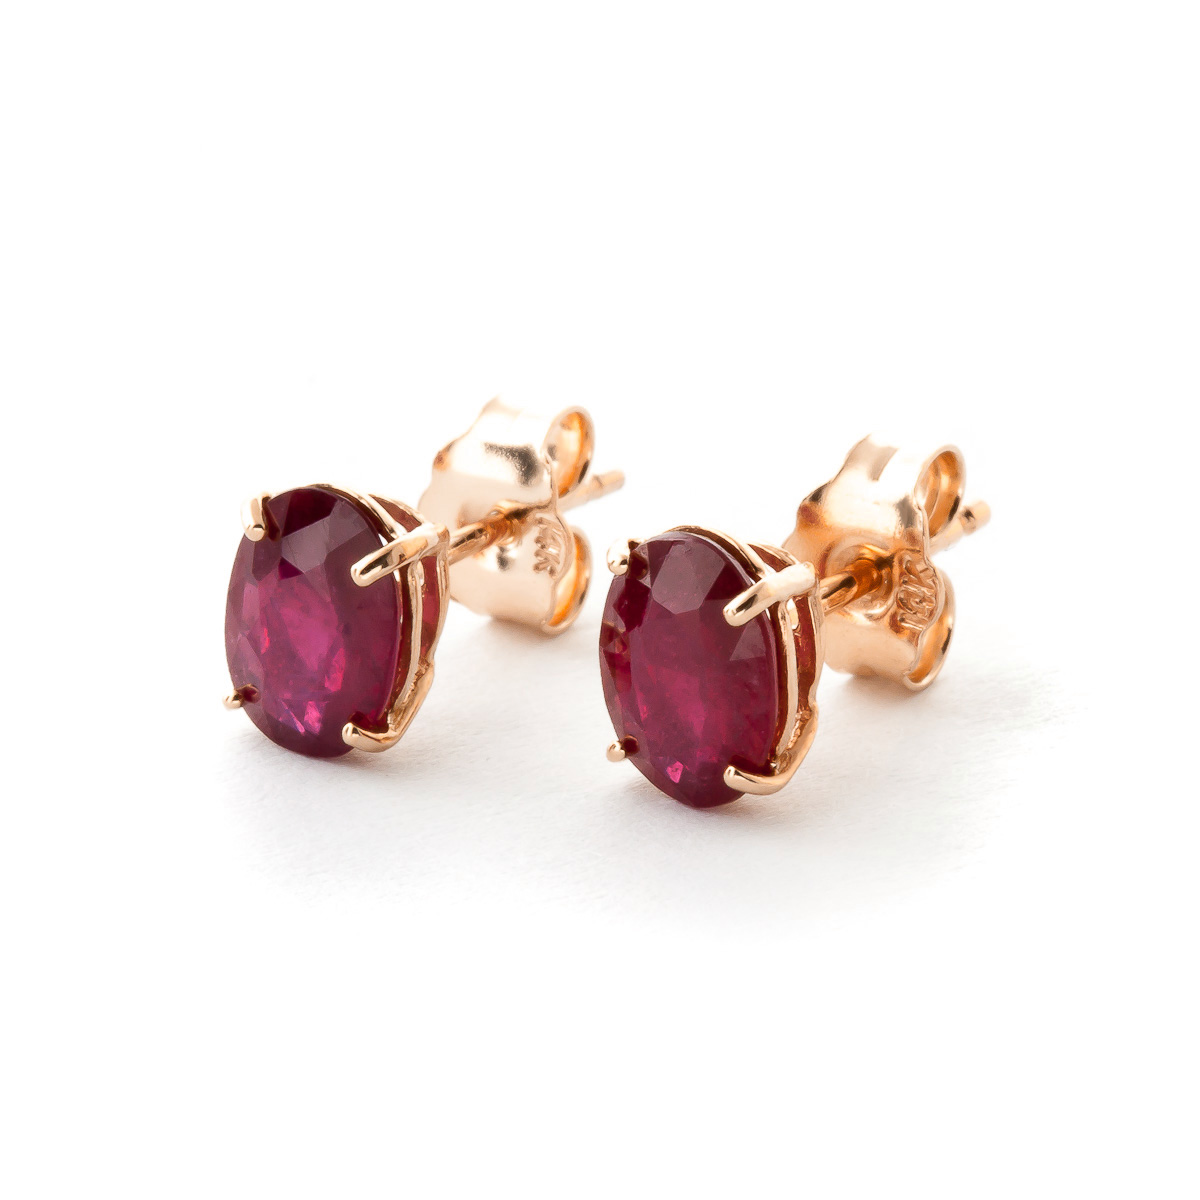 Ruby Stud Earrings 1.8ctw in 9ct Rose Gold